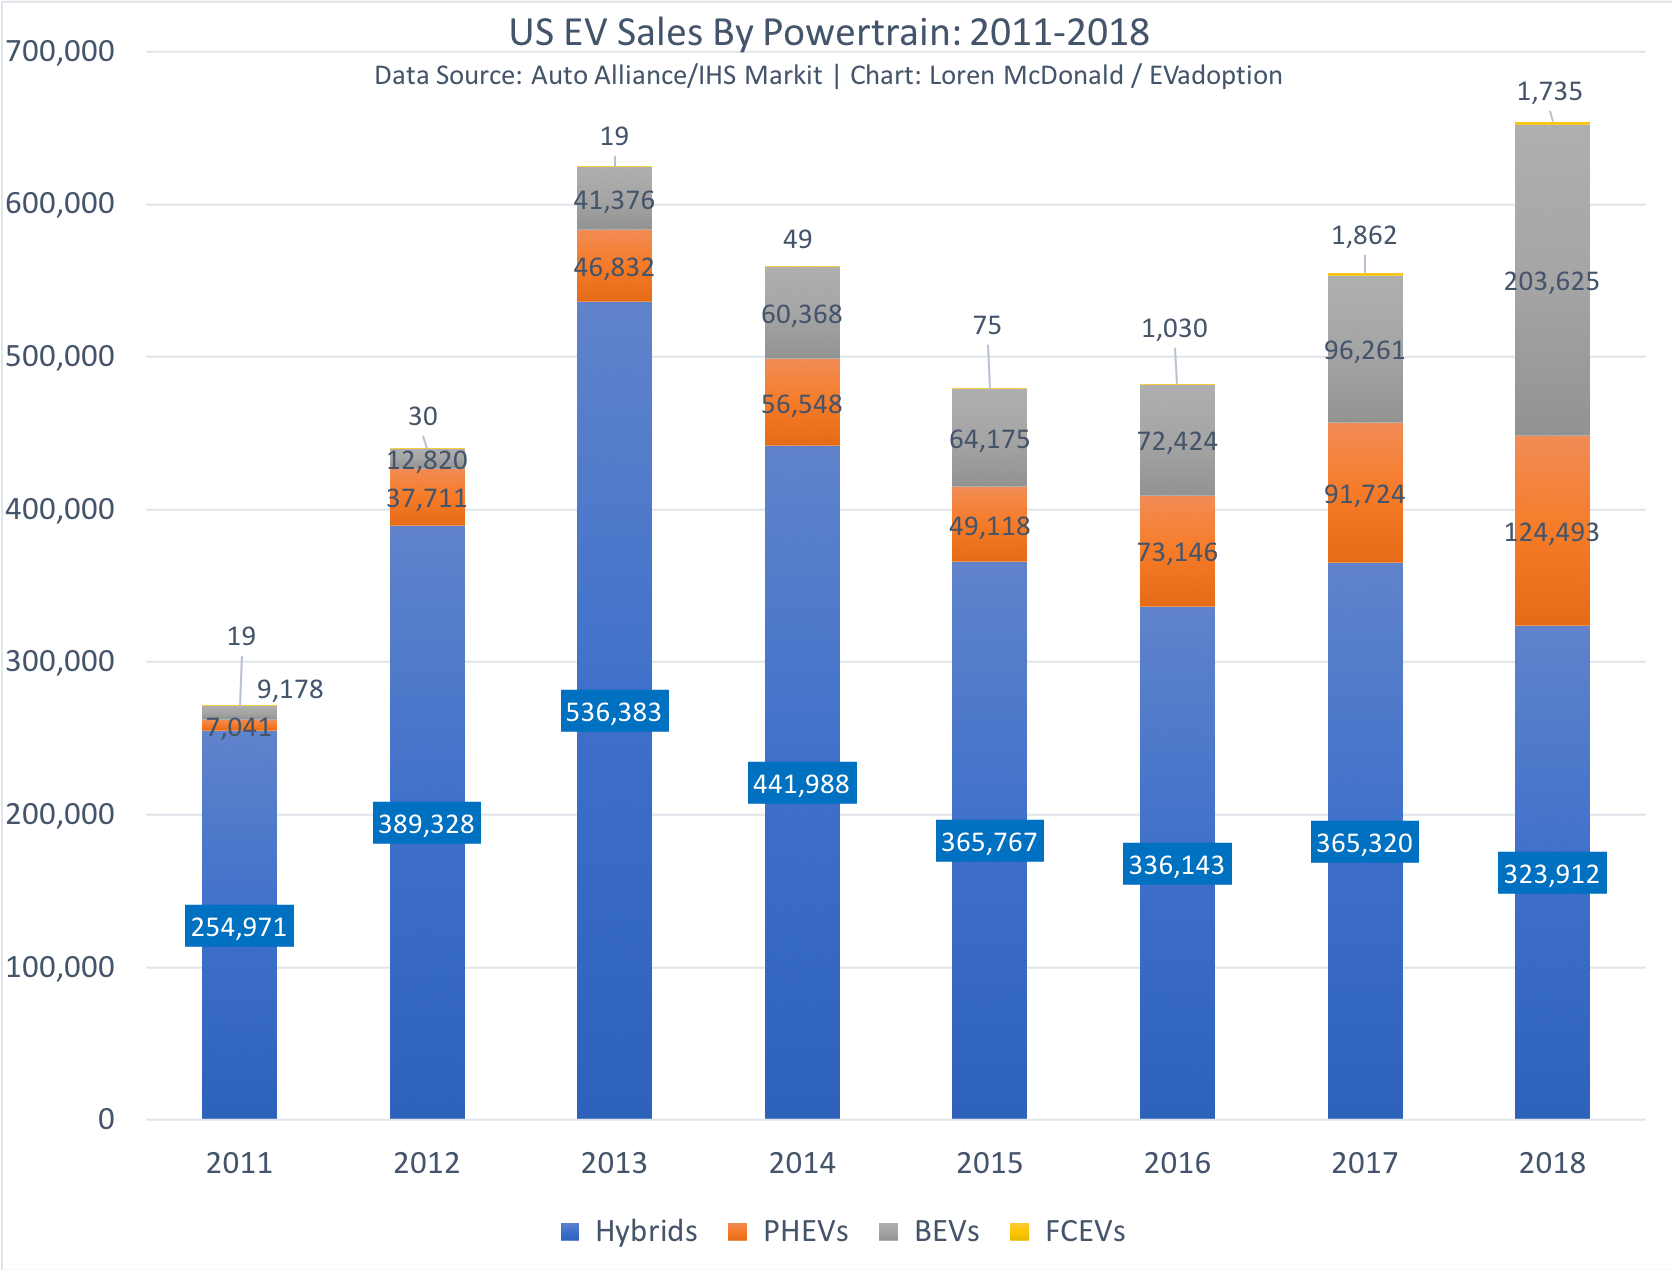 California Reaches 7.84% EV Market Share for 2018; US Hits 1.97%